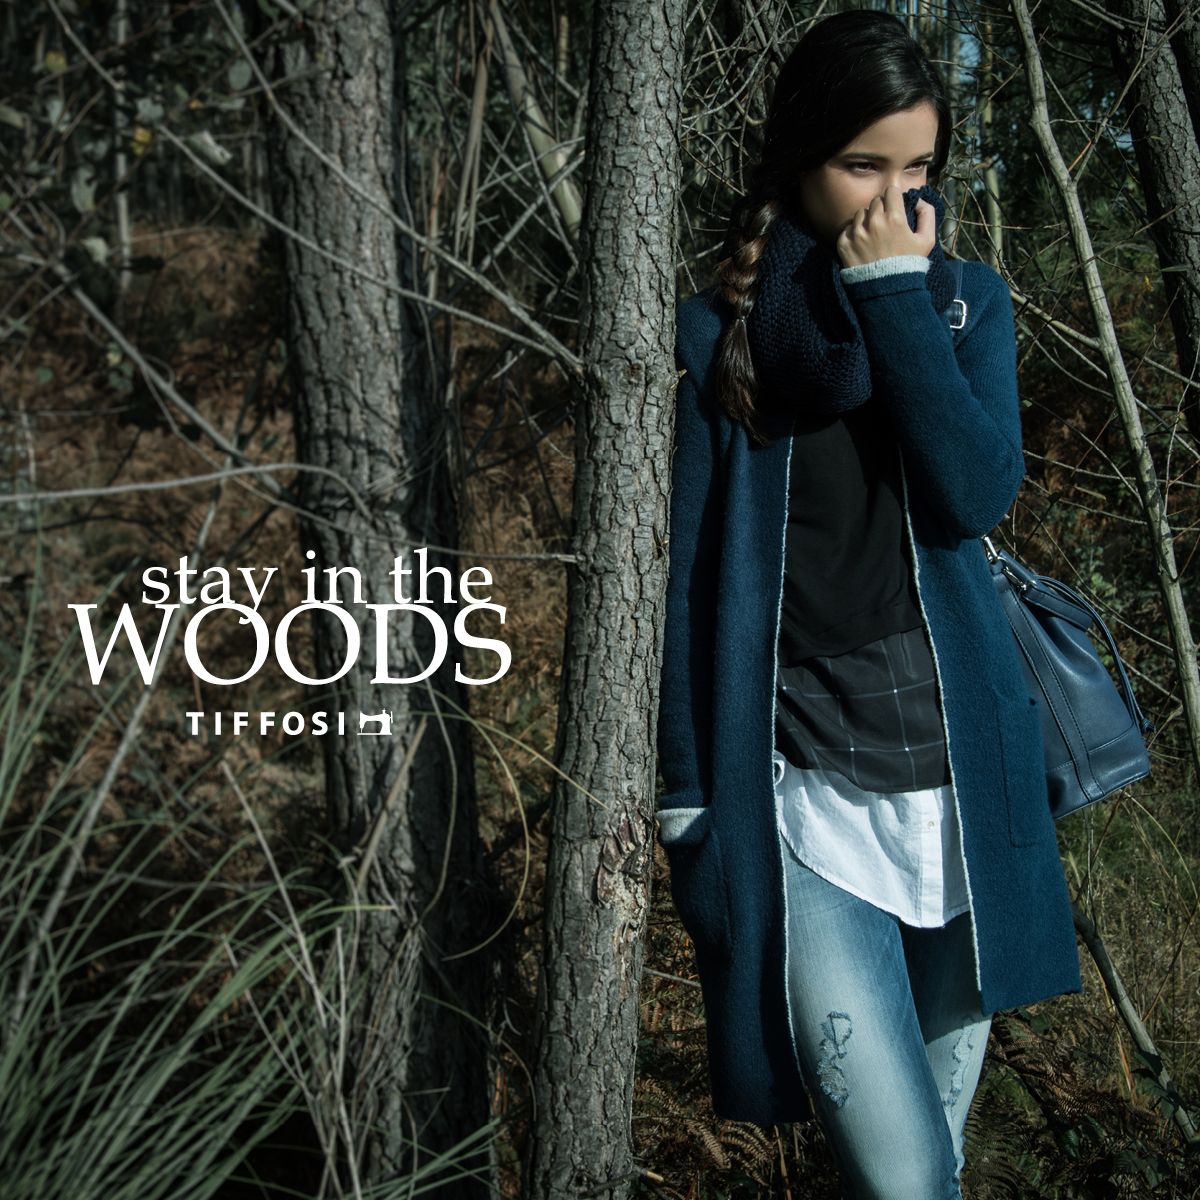 Stay in the Woods www.tiffosi.com  #tiffosi #tiffosidenim #lookbook #musthave #mood #look